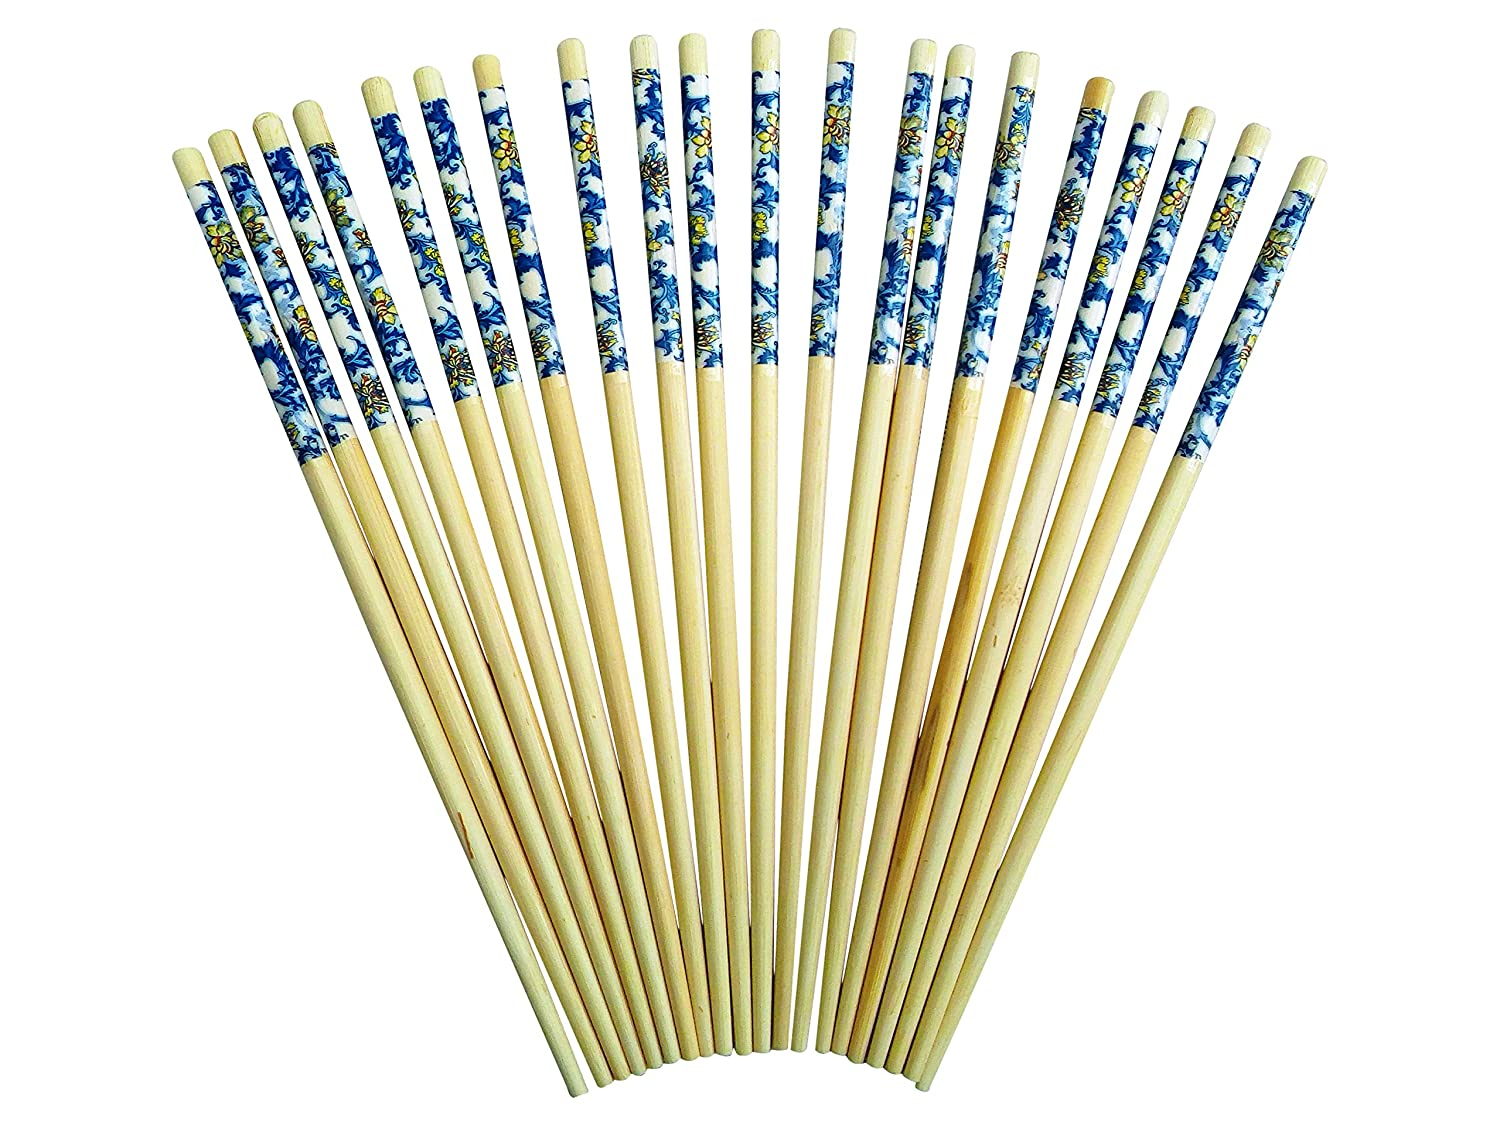 ChopSticks - 10 Pairs of Bamboo Wooden Chop Stick Blue Dragon Conoor